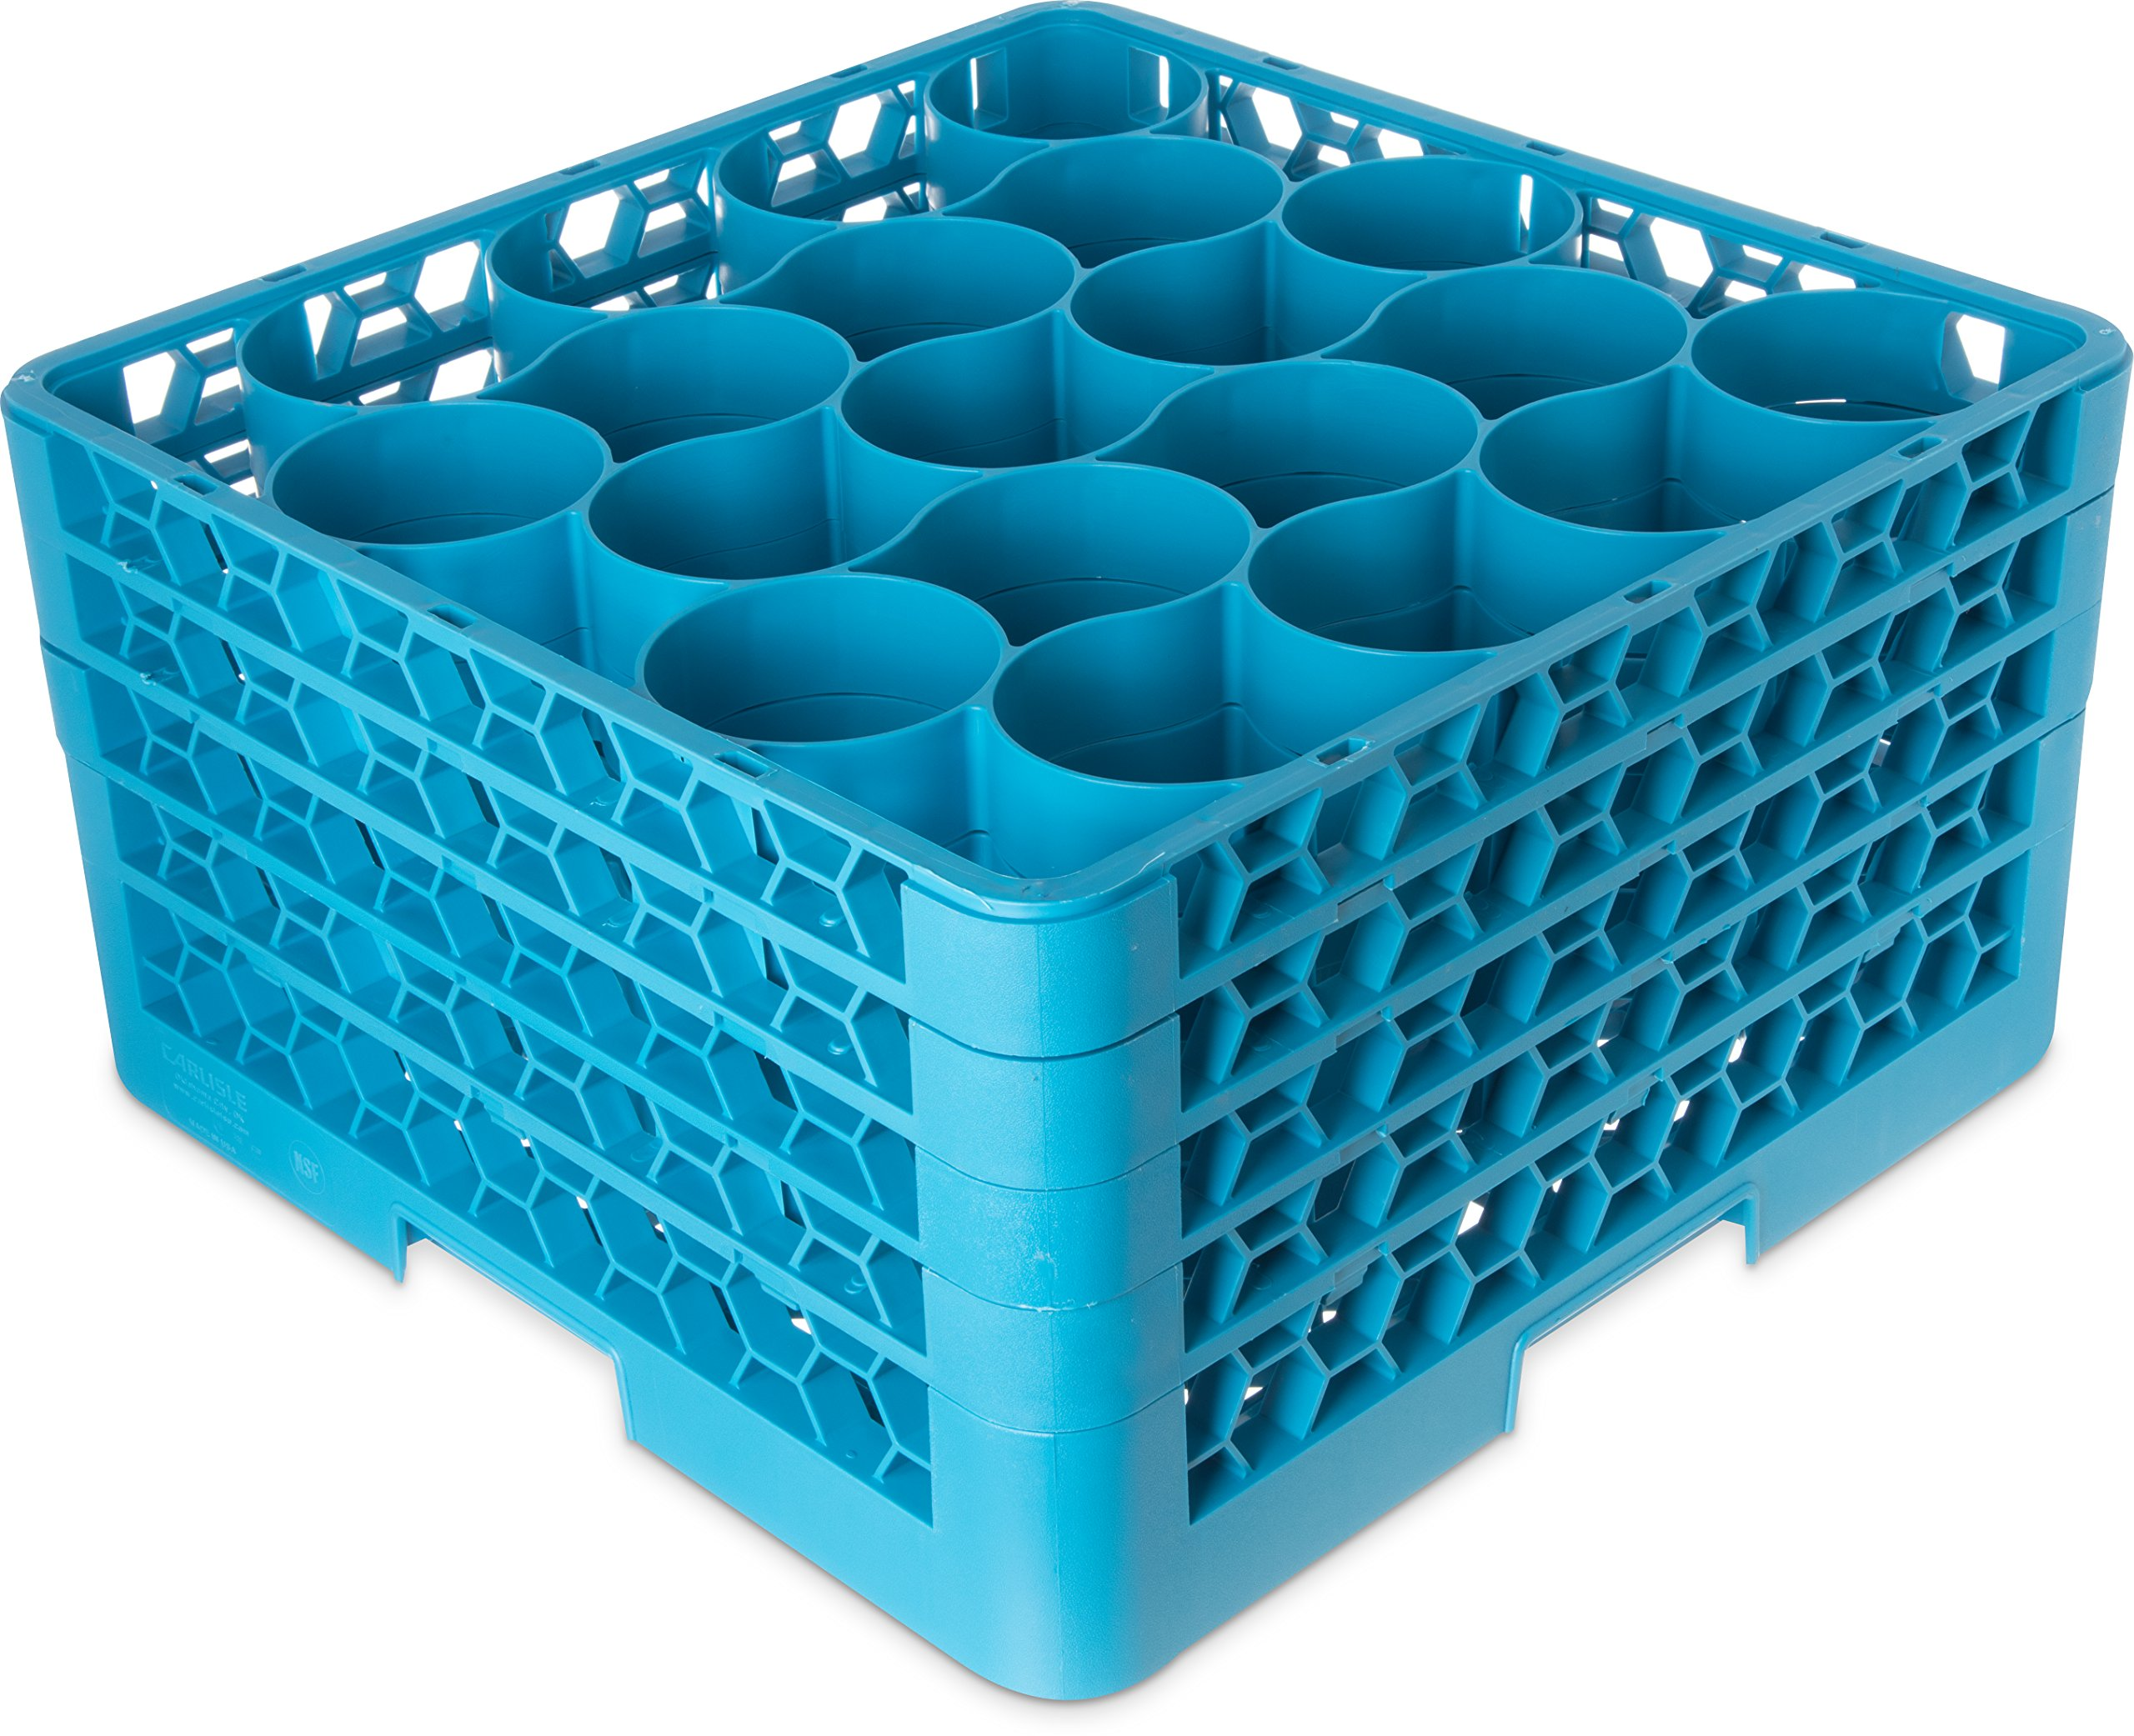 Carlisle RW20-314 OptiClean NeWave Polypropylene 20-Compartment Glass Rack with 4 Extenders, 19-3/4'' Length x 19-3/4'' Width x 10.30'' Height, Blue (Case of 2)